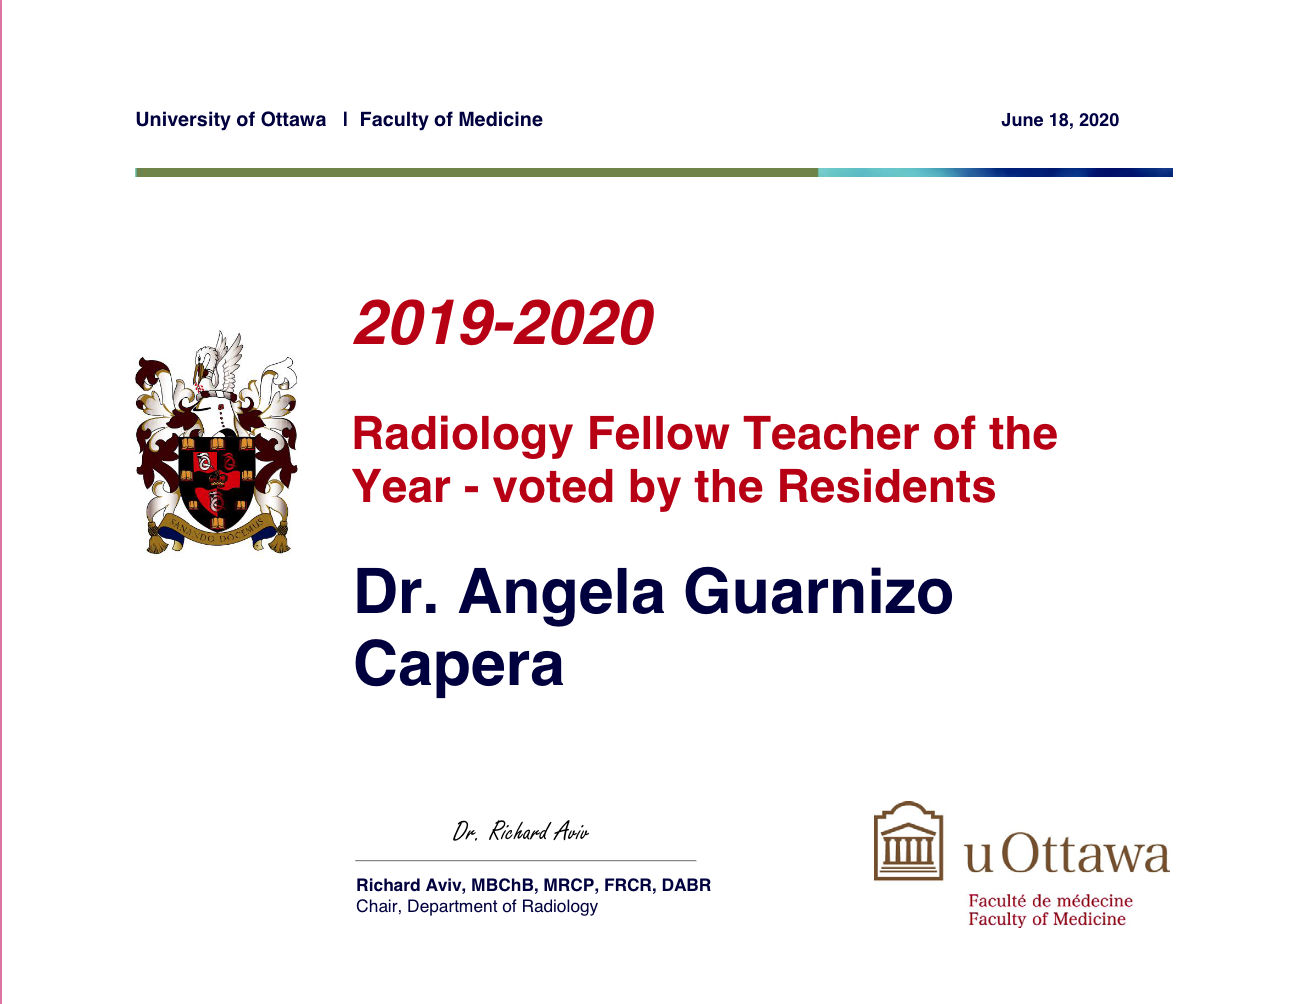 2019-2020 Fellow Teacher of the Year - Voted by the Residents. Winner is Dr. Angela Guarnizo Capera